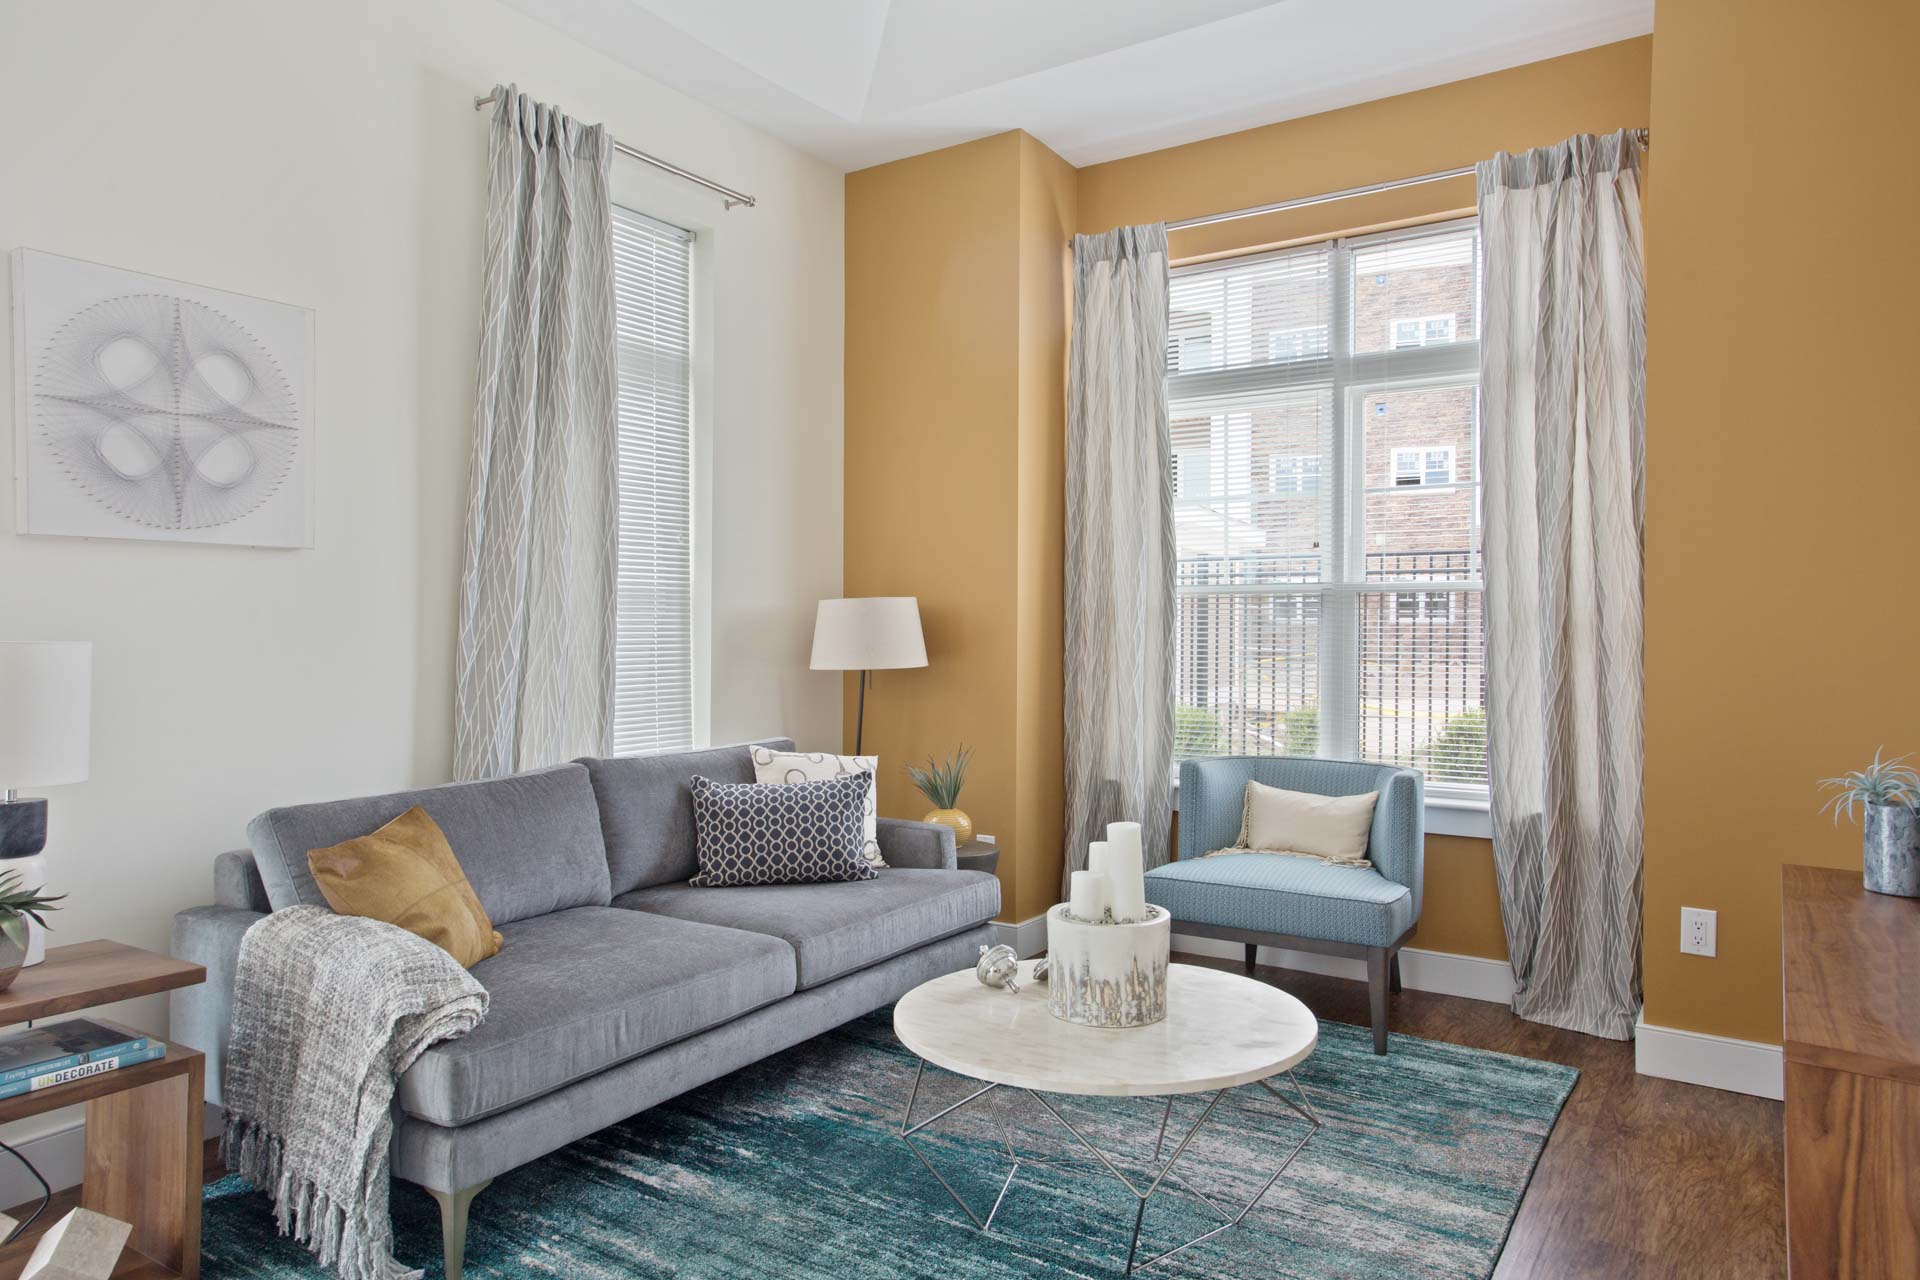 Spacious living room inside the Corsa Apartments in Salem, New Hampshire